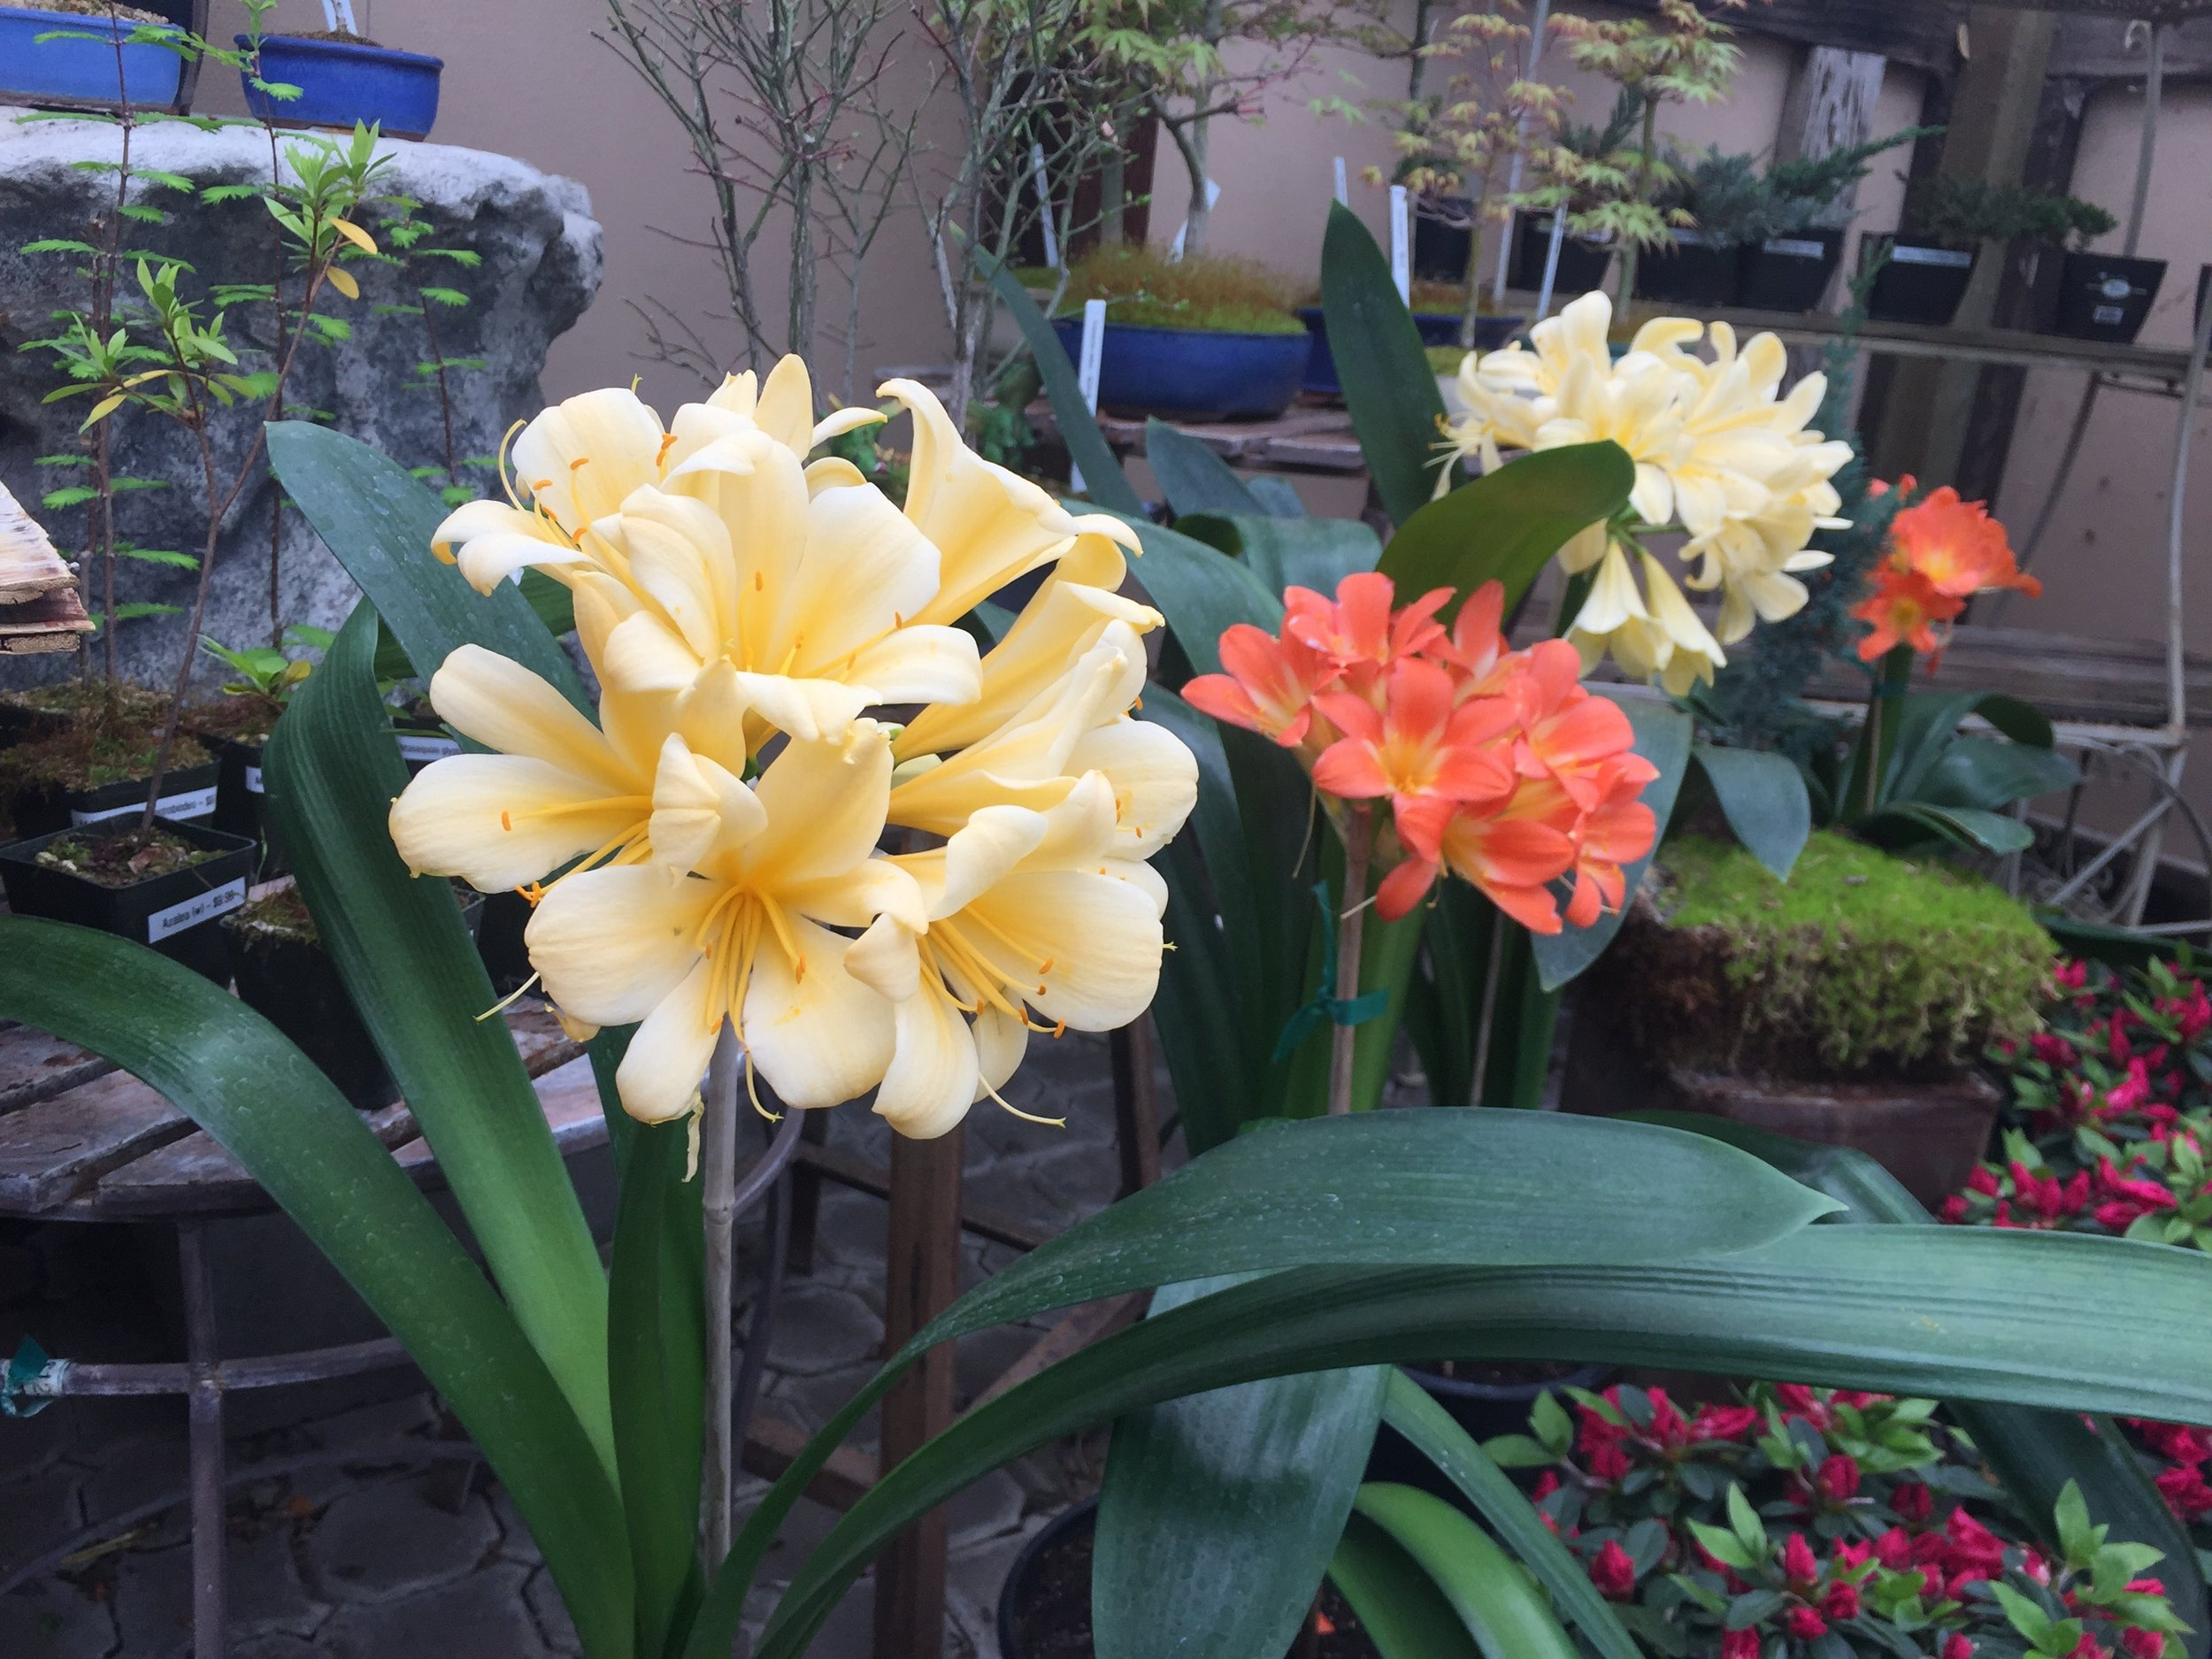 Clivia blooming now!